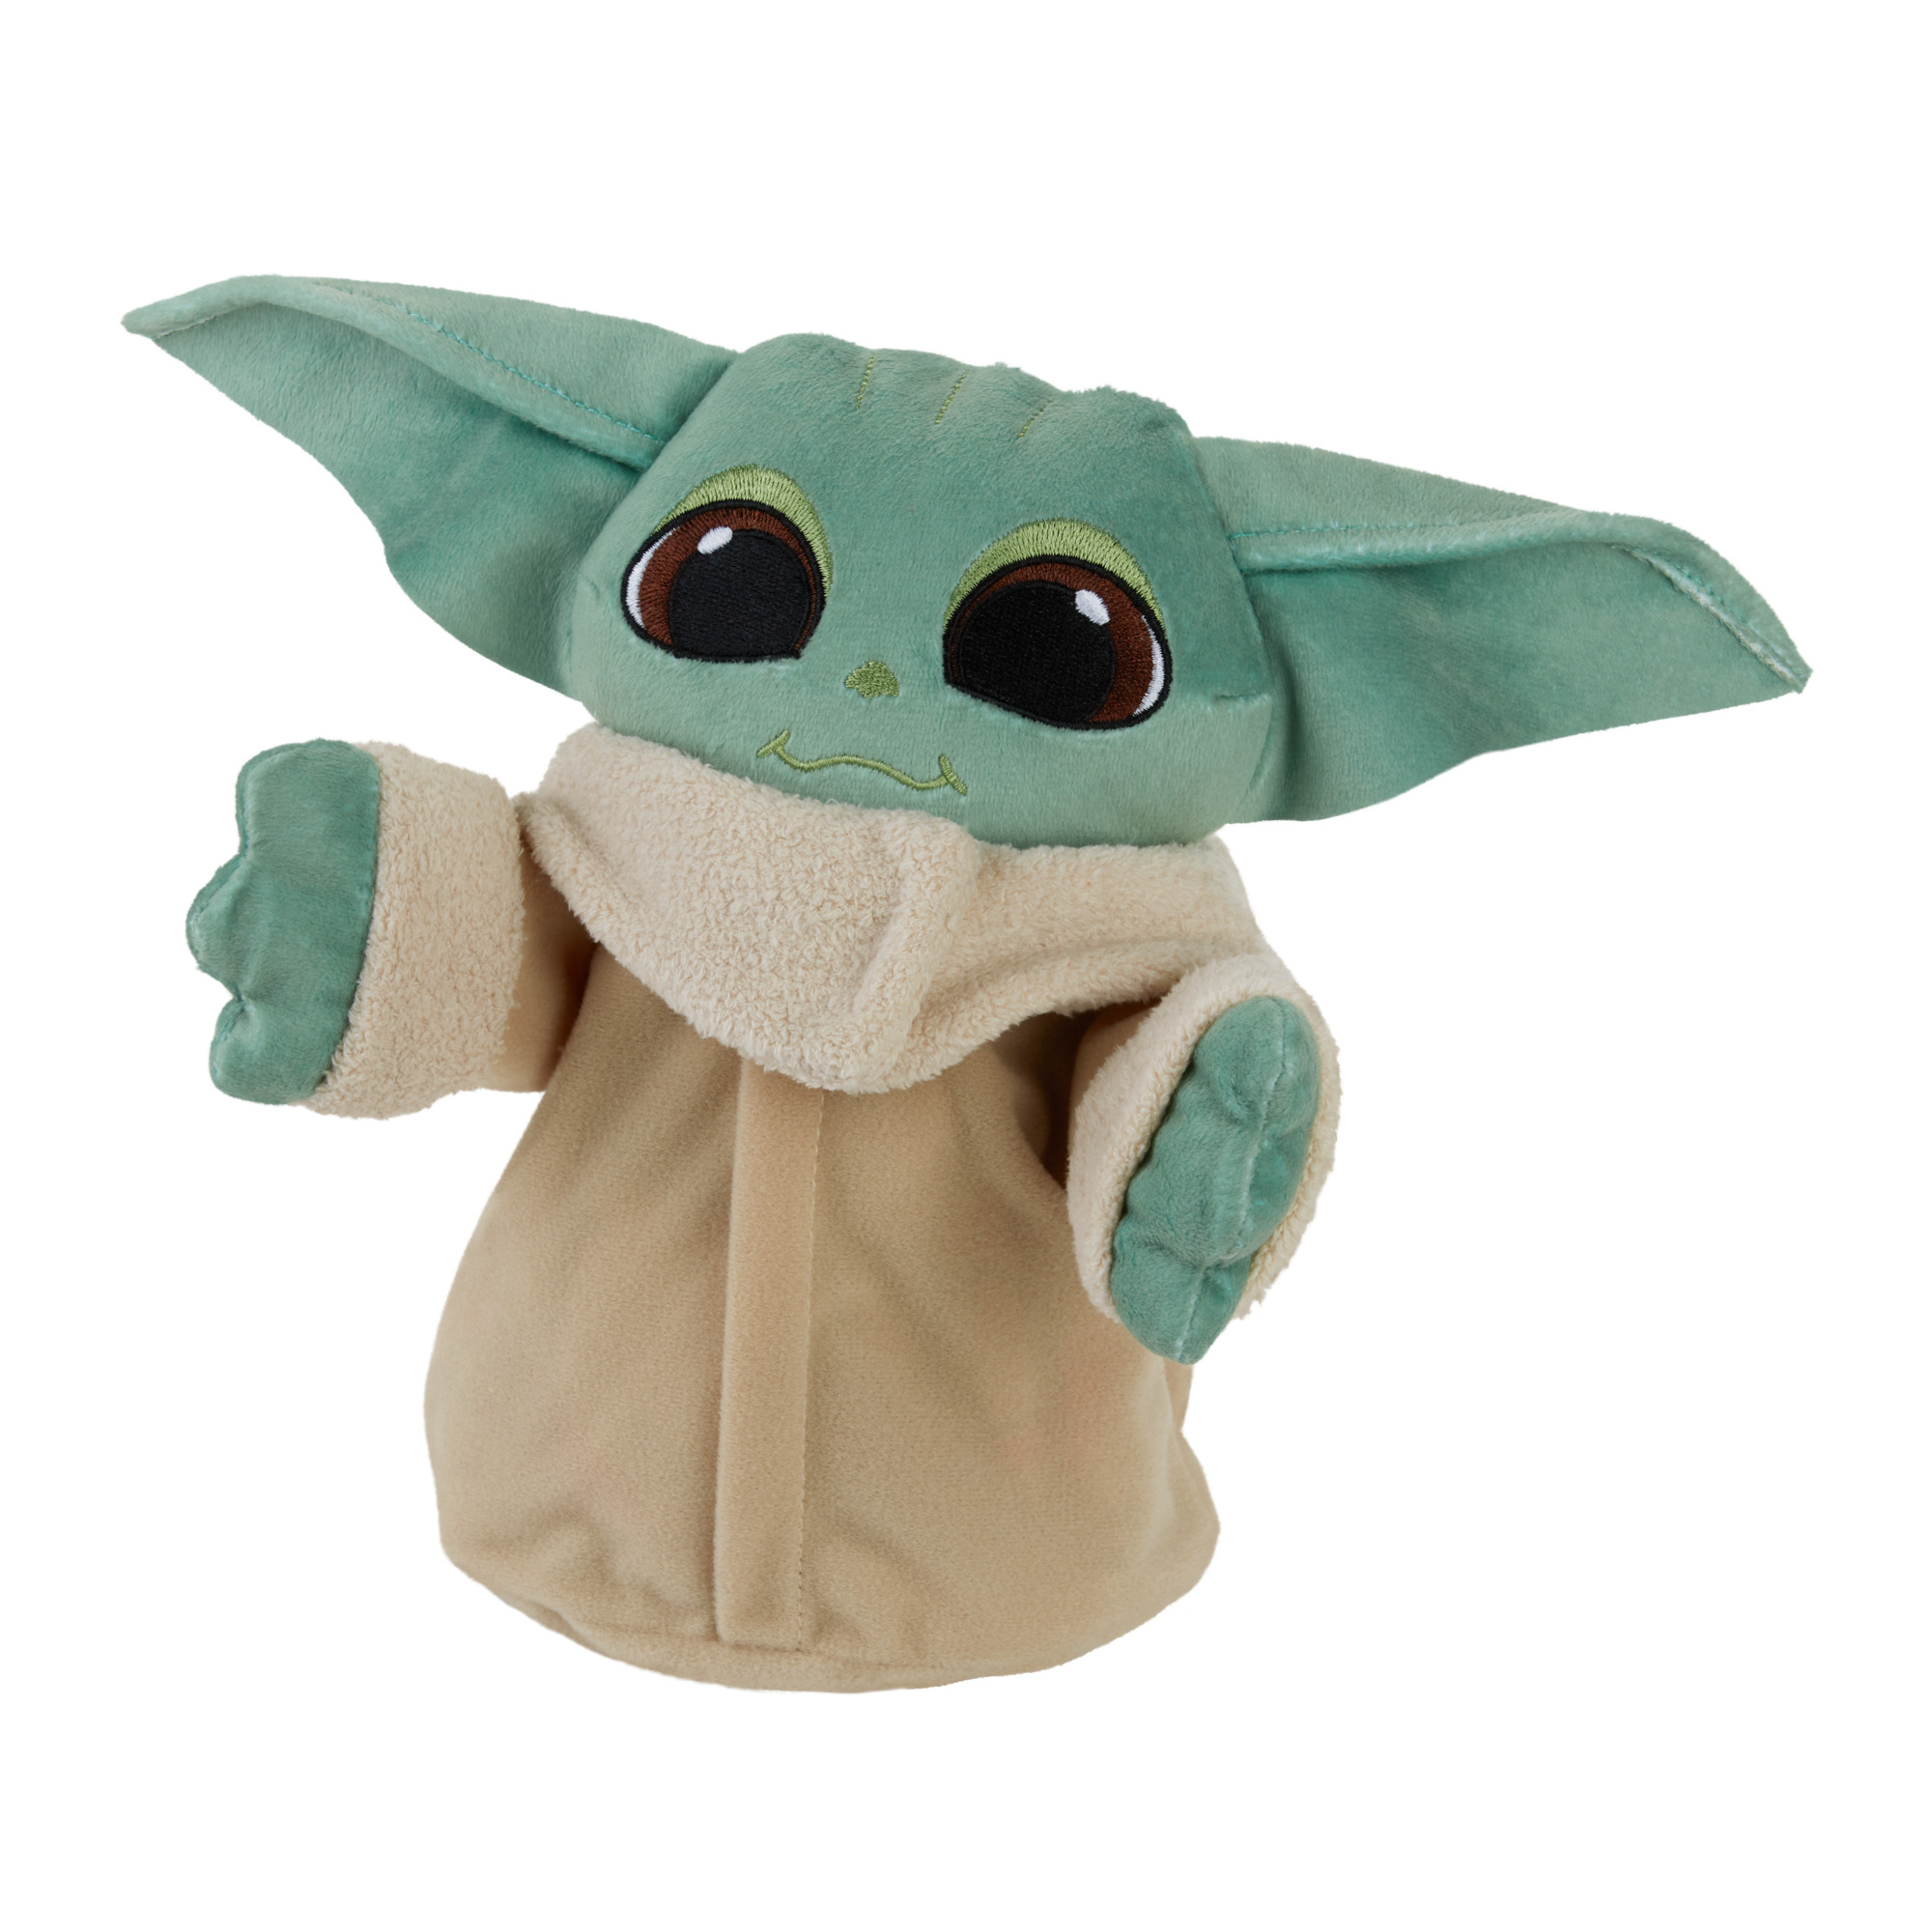 STAR WARS THE BOUNTY COLLECTION THE CHILD HIDEAWAY HOVER-PRAM PLUSH – oop(4)